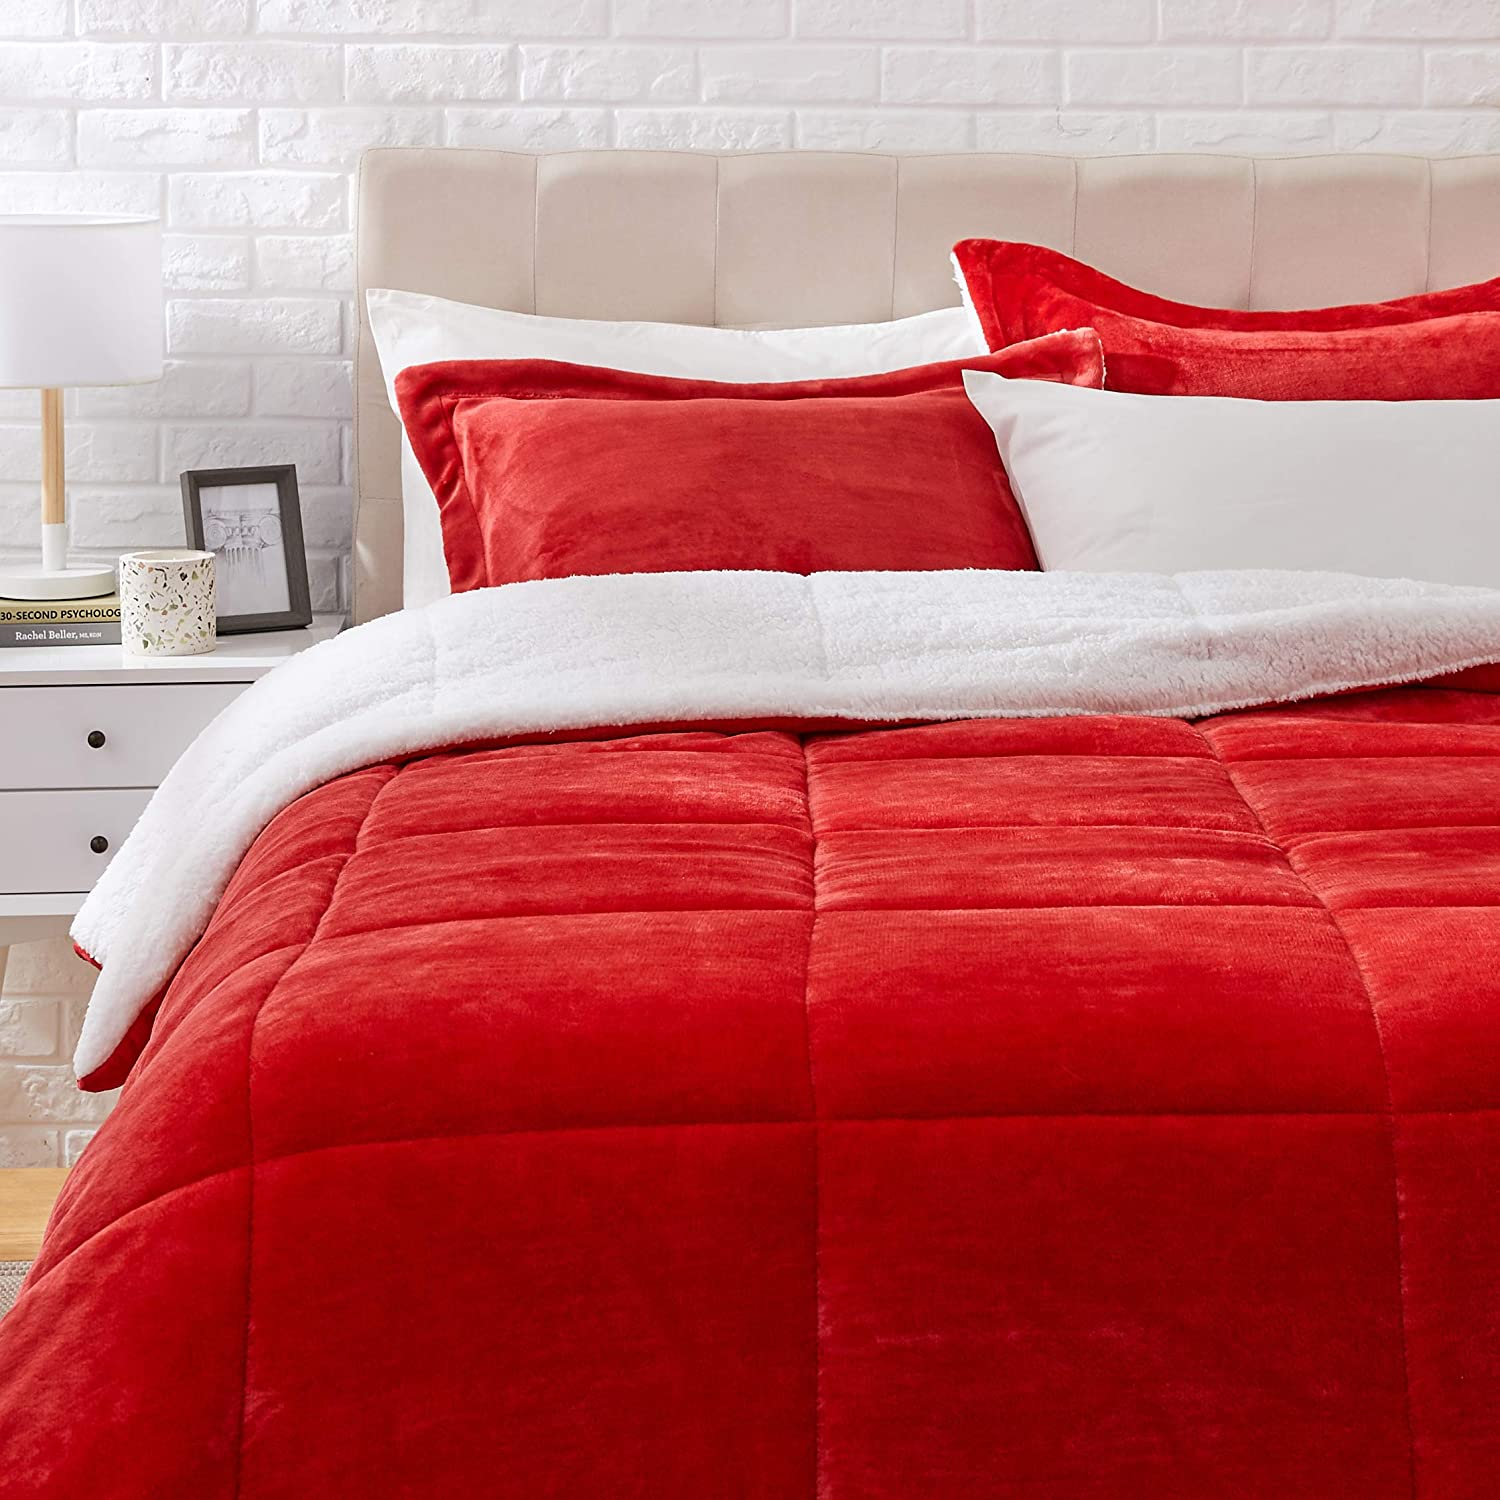 AmazonBasics Ultra-Soft Micromink Sherpa Comforter Bed Set, King, Red - 3-Piece